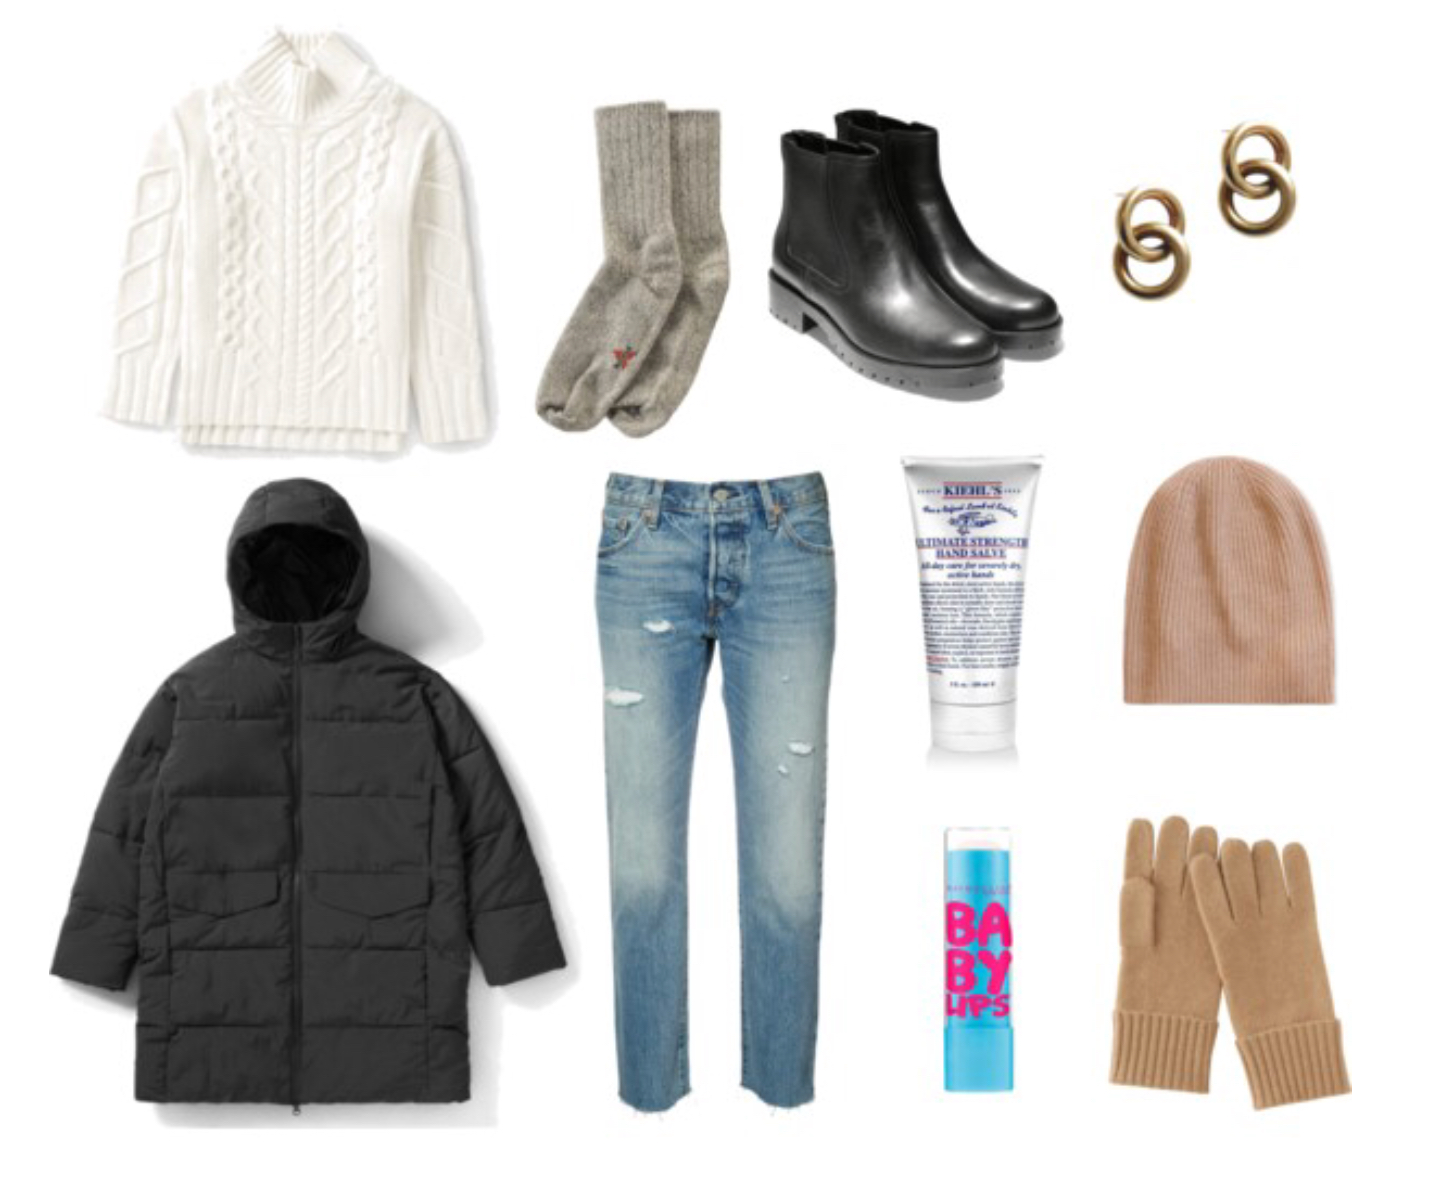 """1.  Oversized turtleneck sweater  2.  Warm socks  3.  Black Chelsea boots  4.  Hoop earrings  5.  Puffer  6.  Mom jeans  7.  """"Ultimate strength"""" hand lotion  8.  Lip balm  9.  Hat  and  gloves"""